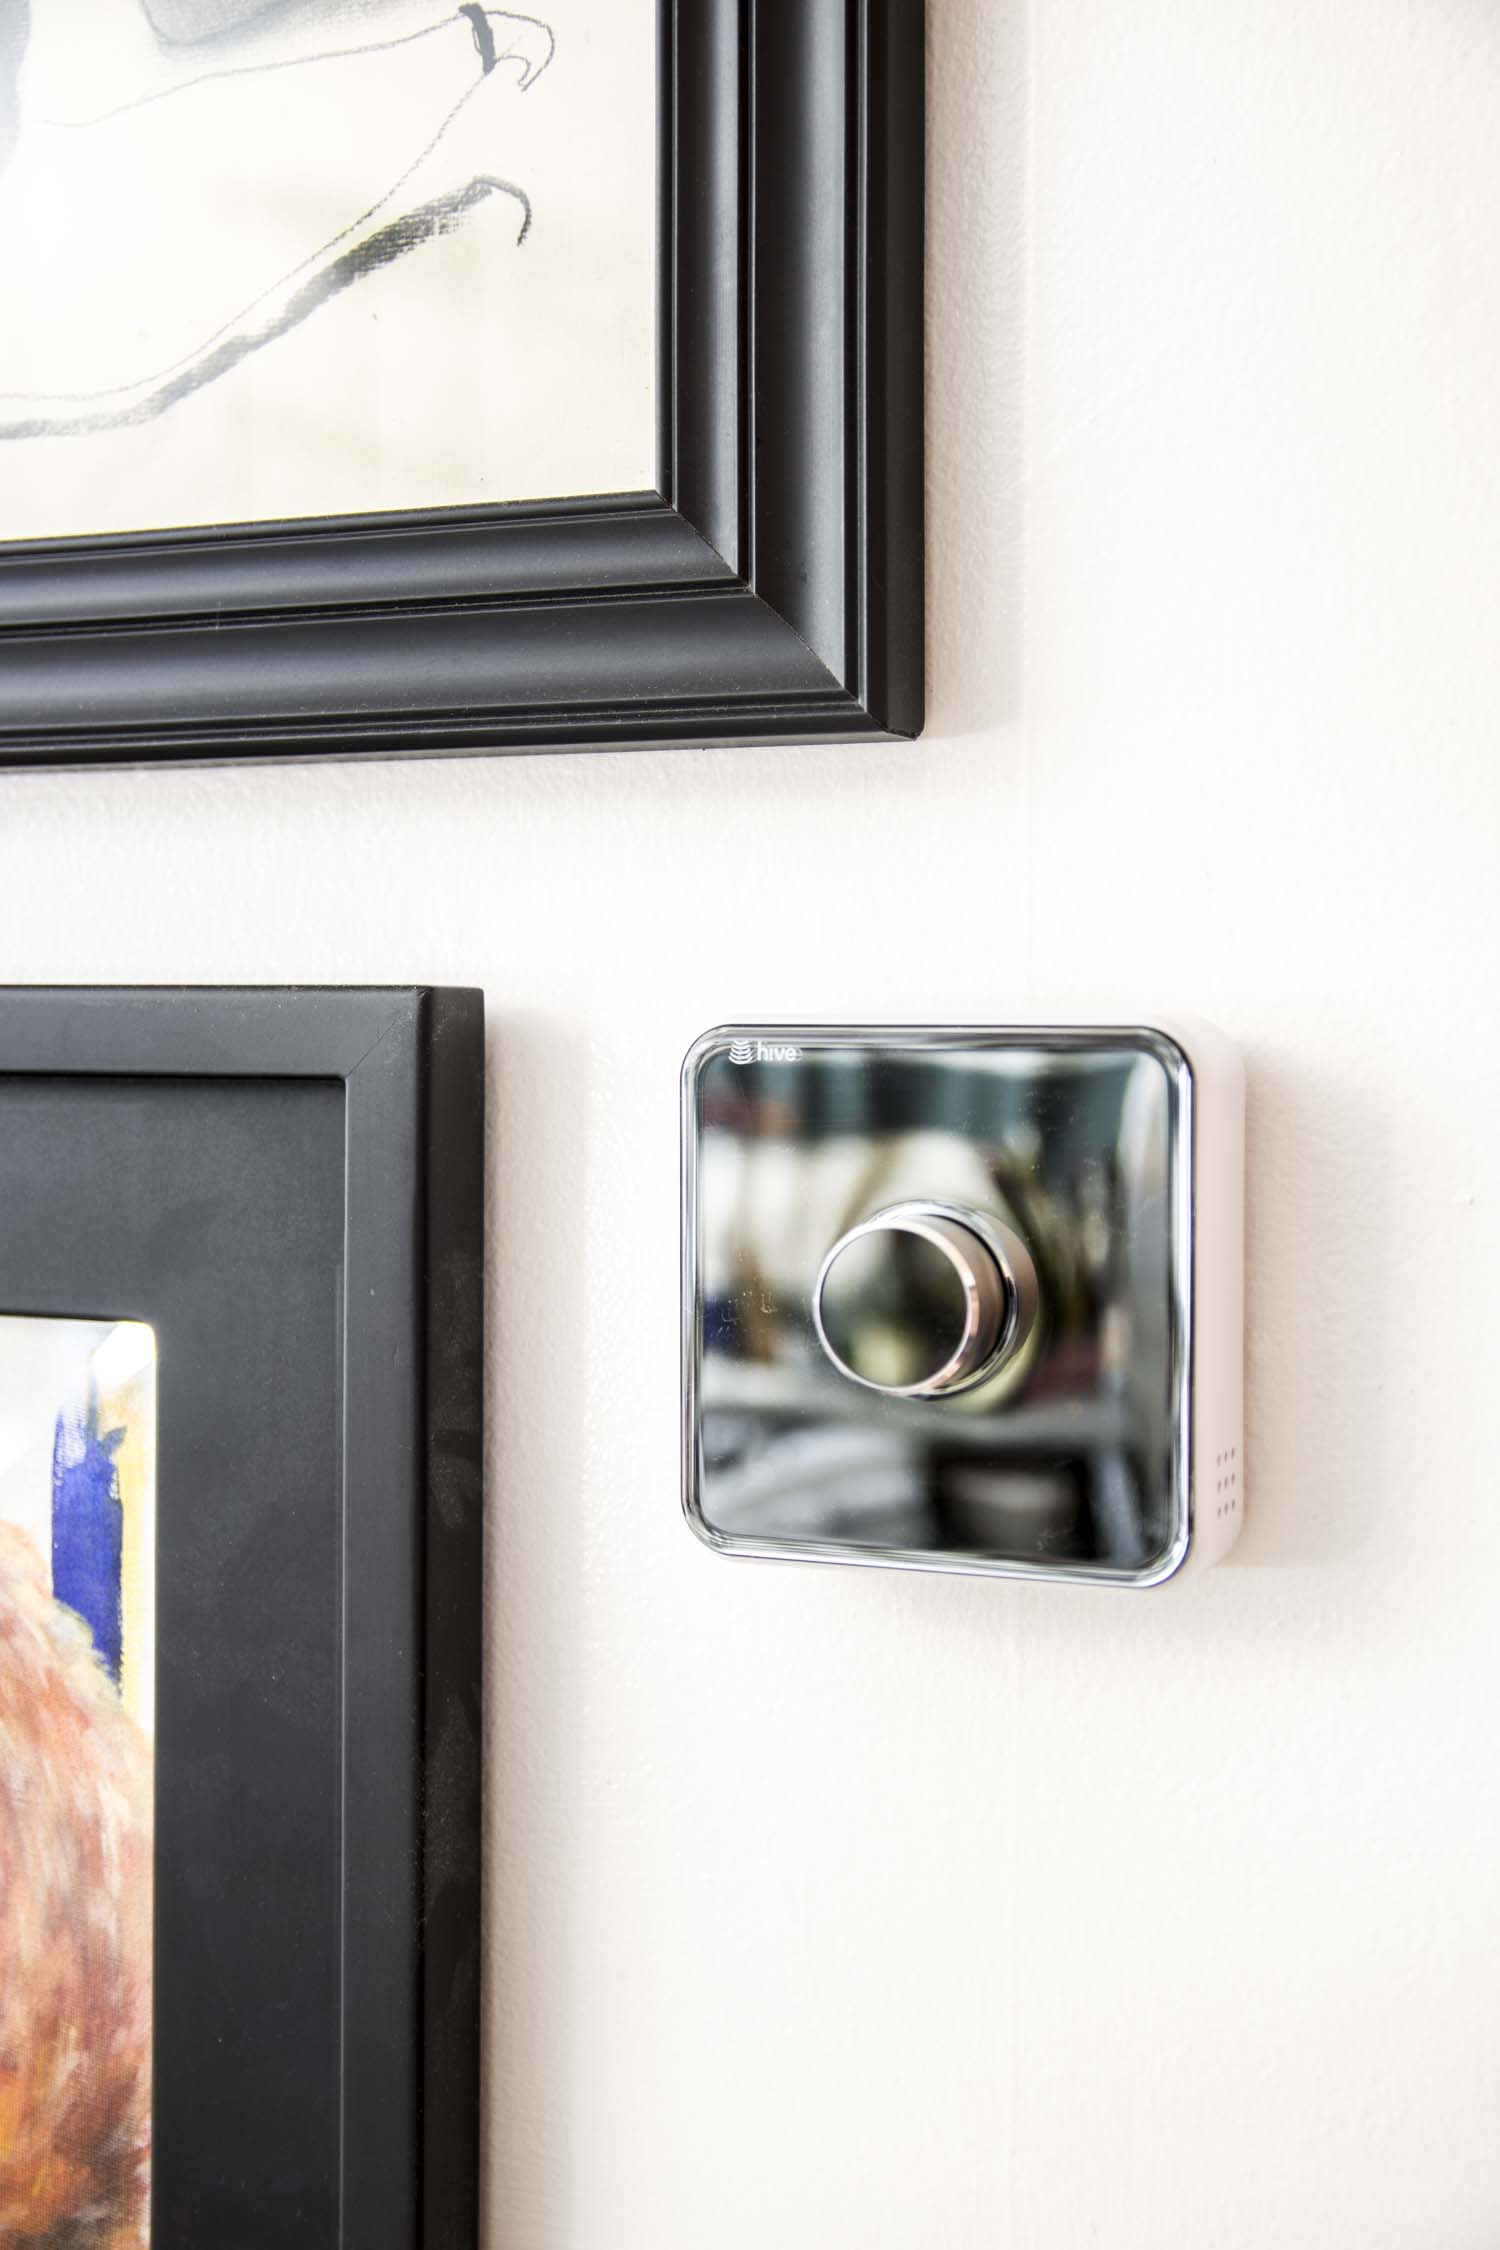 Hive smart thermostat on Thou Swell @thouswellblog